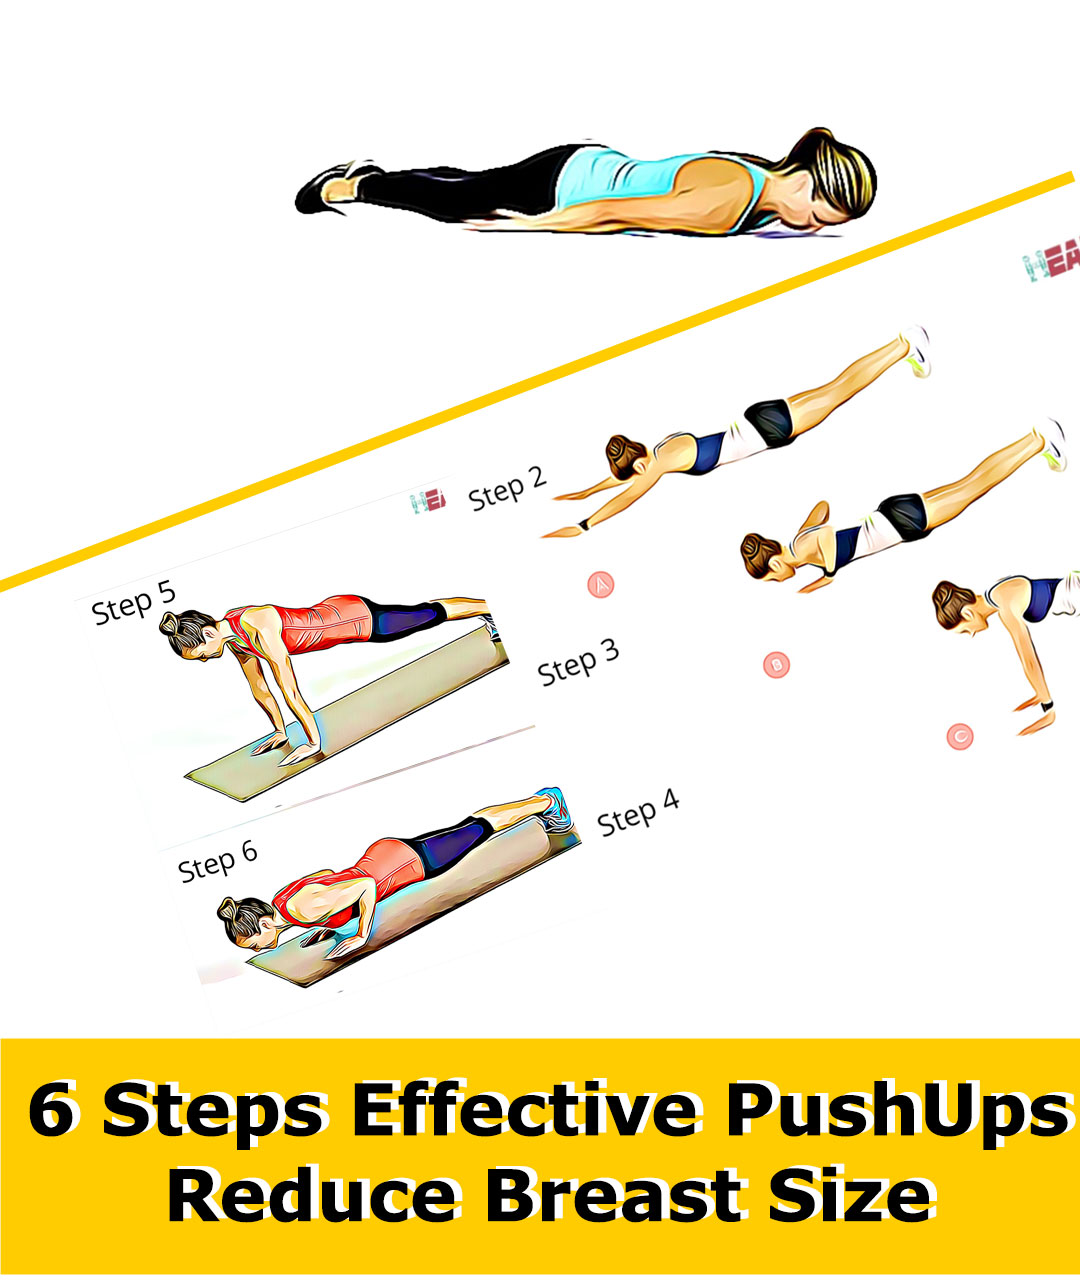 Steps to Reduce Breast Size with Pushups